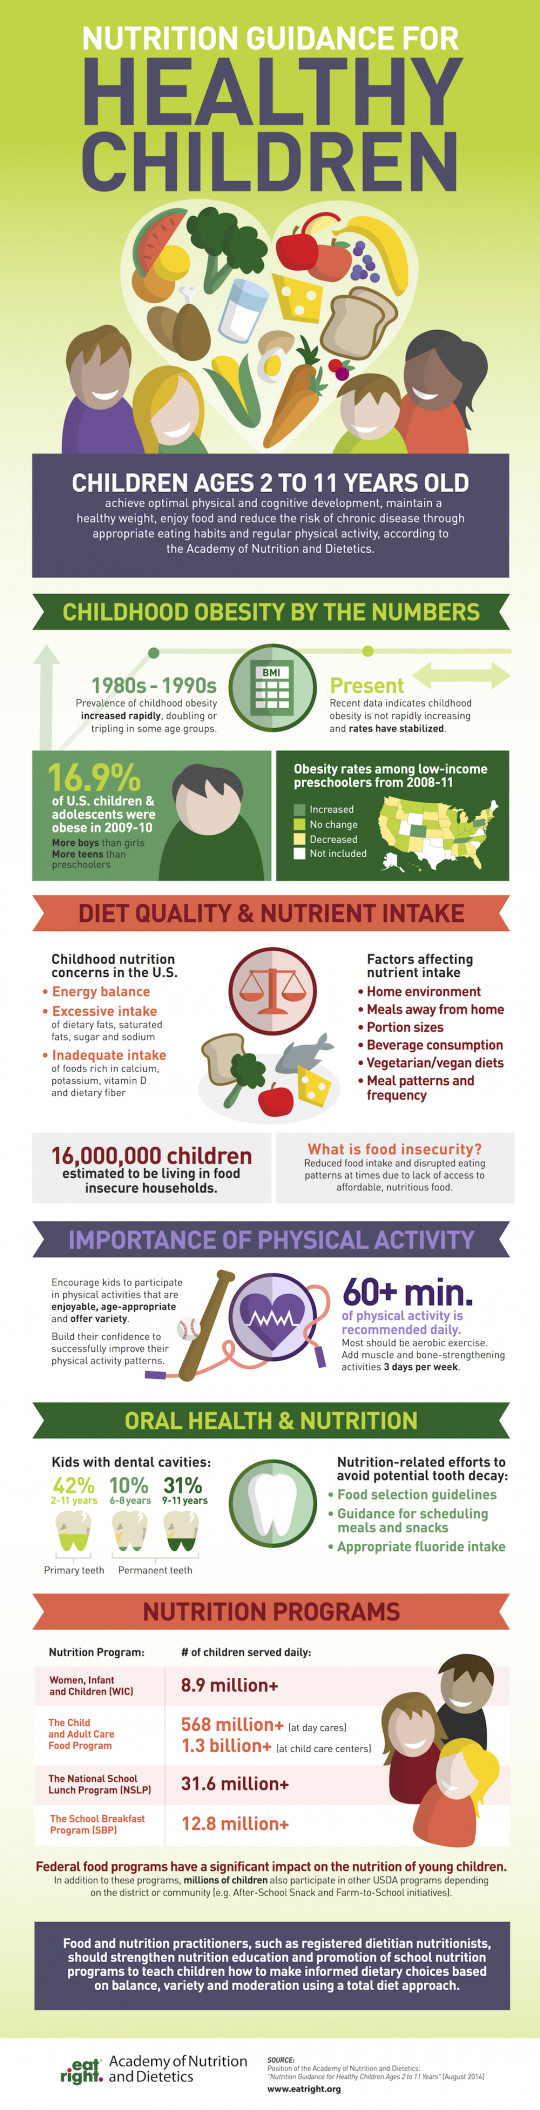 Nutrition Guidance for Healthy Children